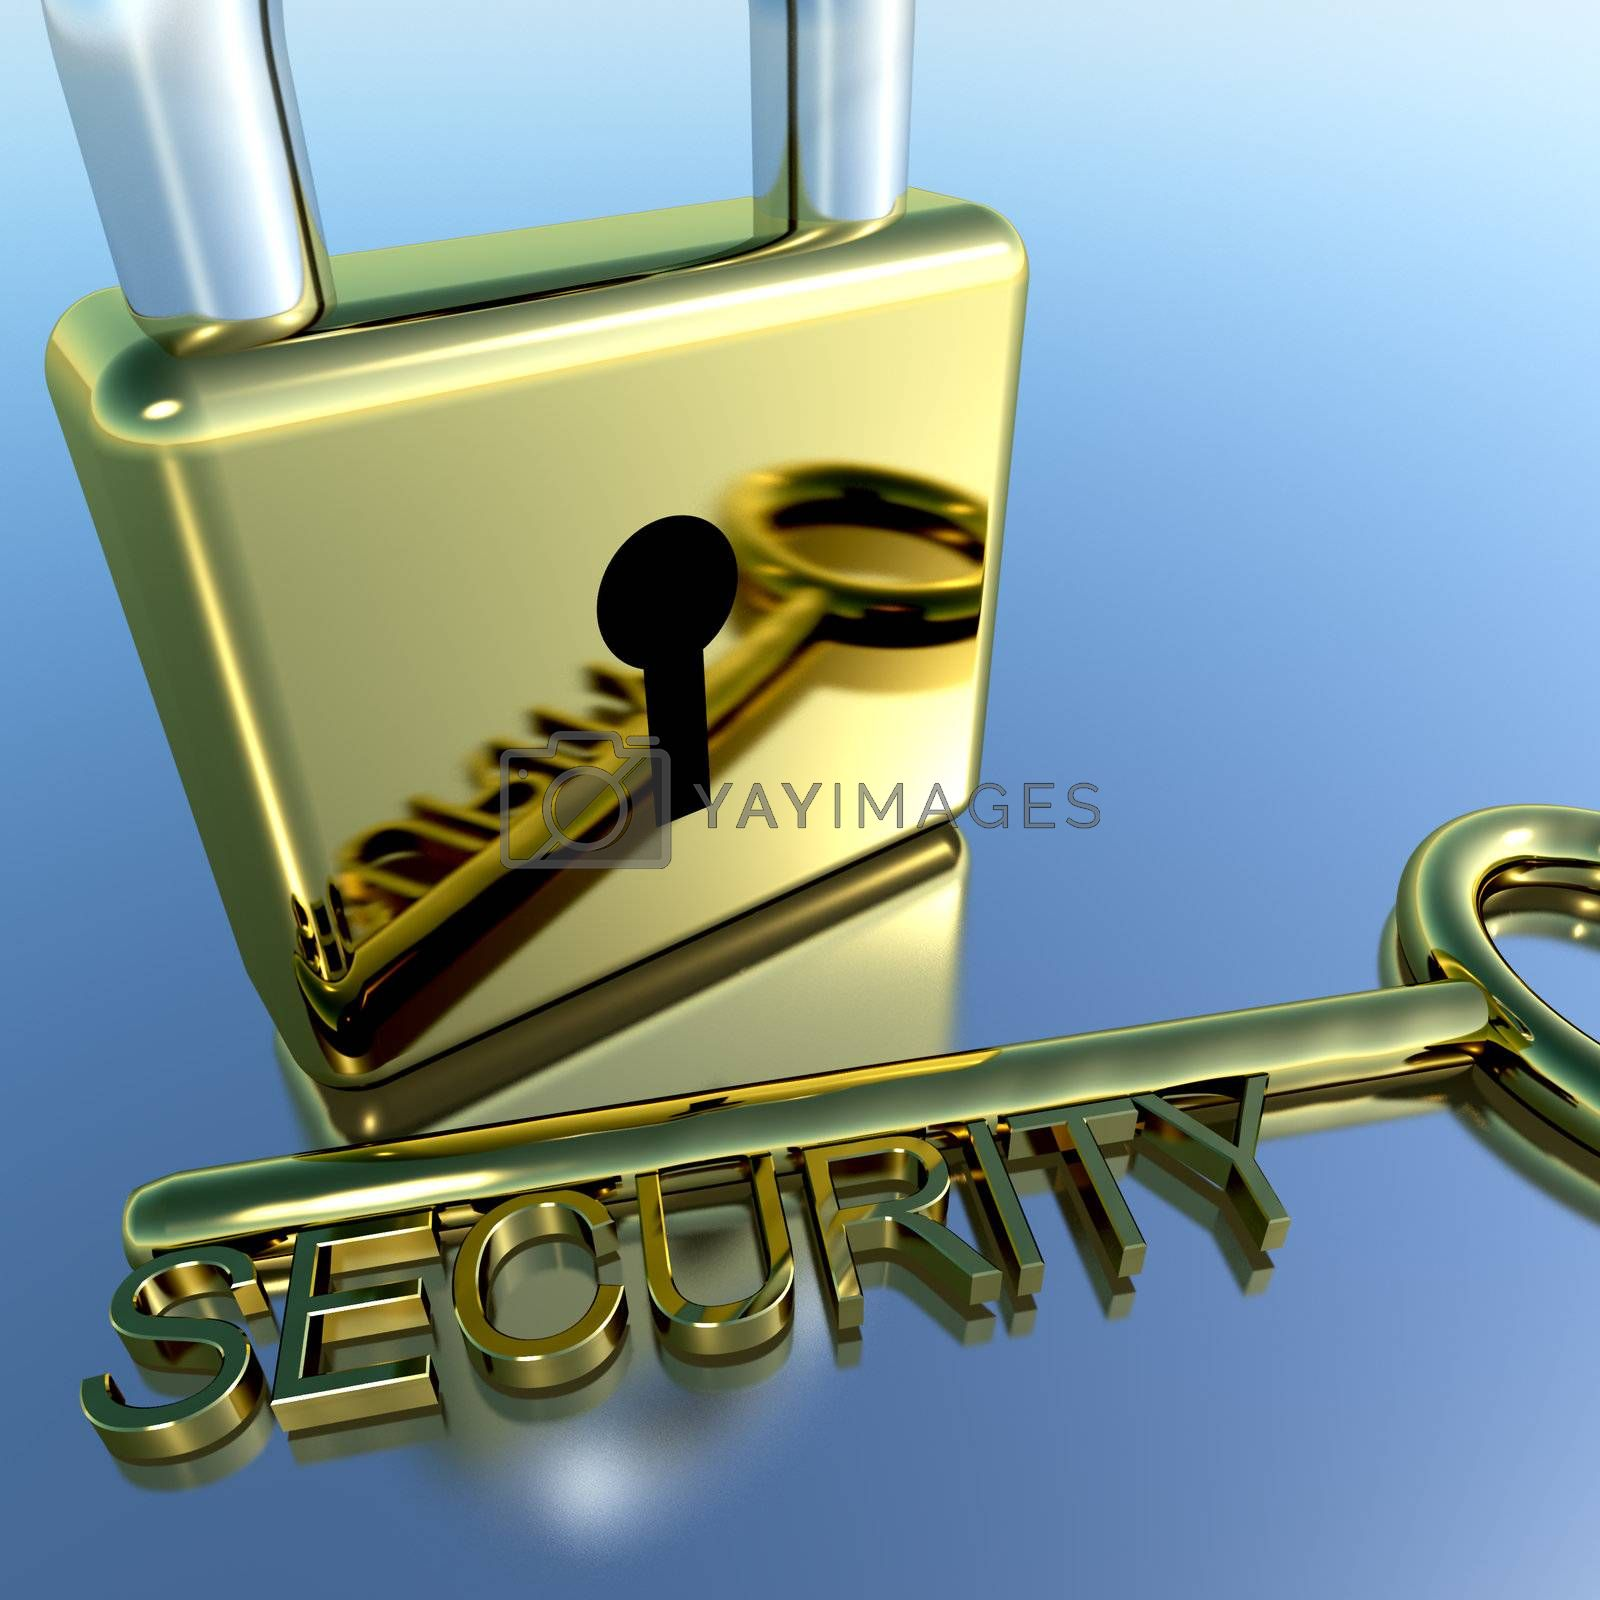 Padlock With Security Key Showing Protection Encryption Or Safety